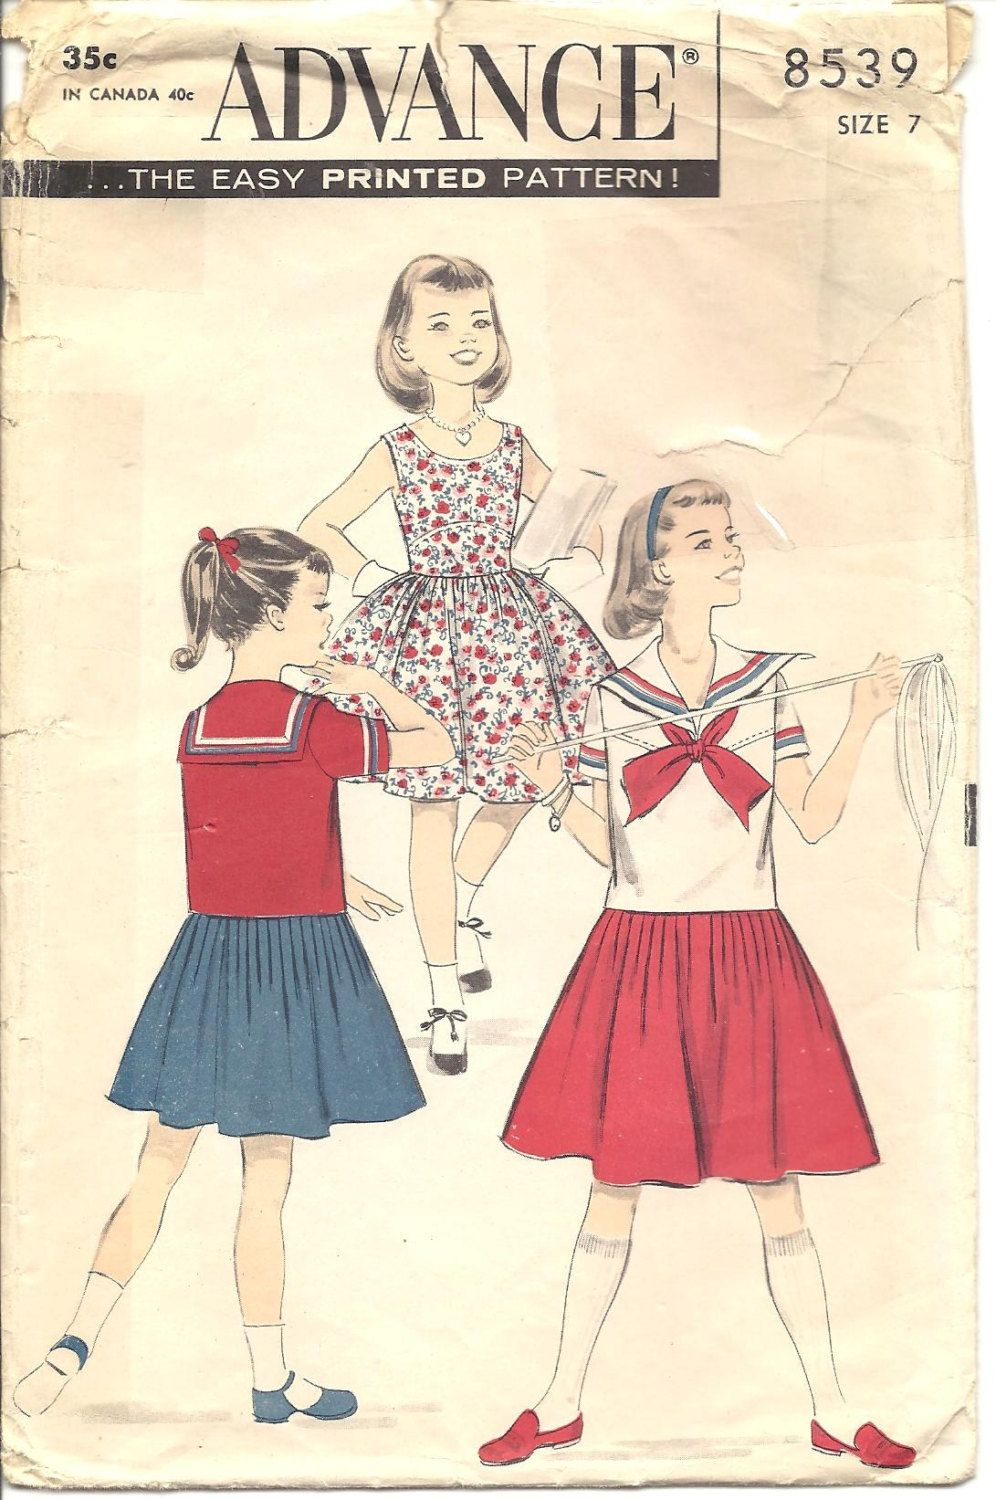 Vintage 50s Advance Girls Dress Sailor Middy Top Sewing Pattern 8539 ...